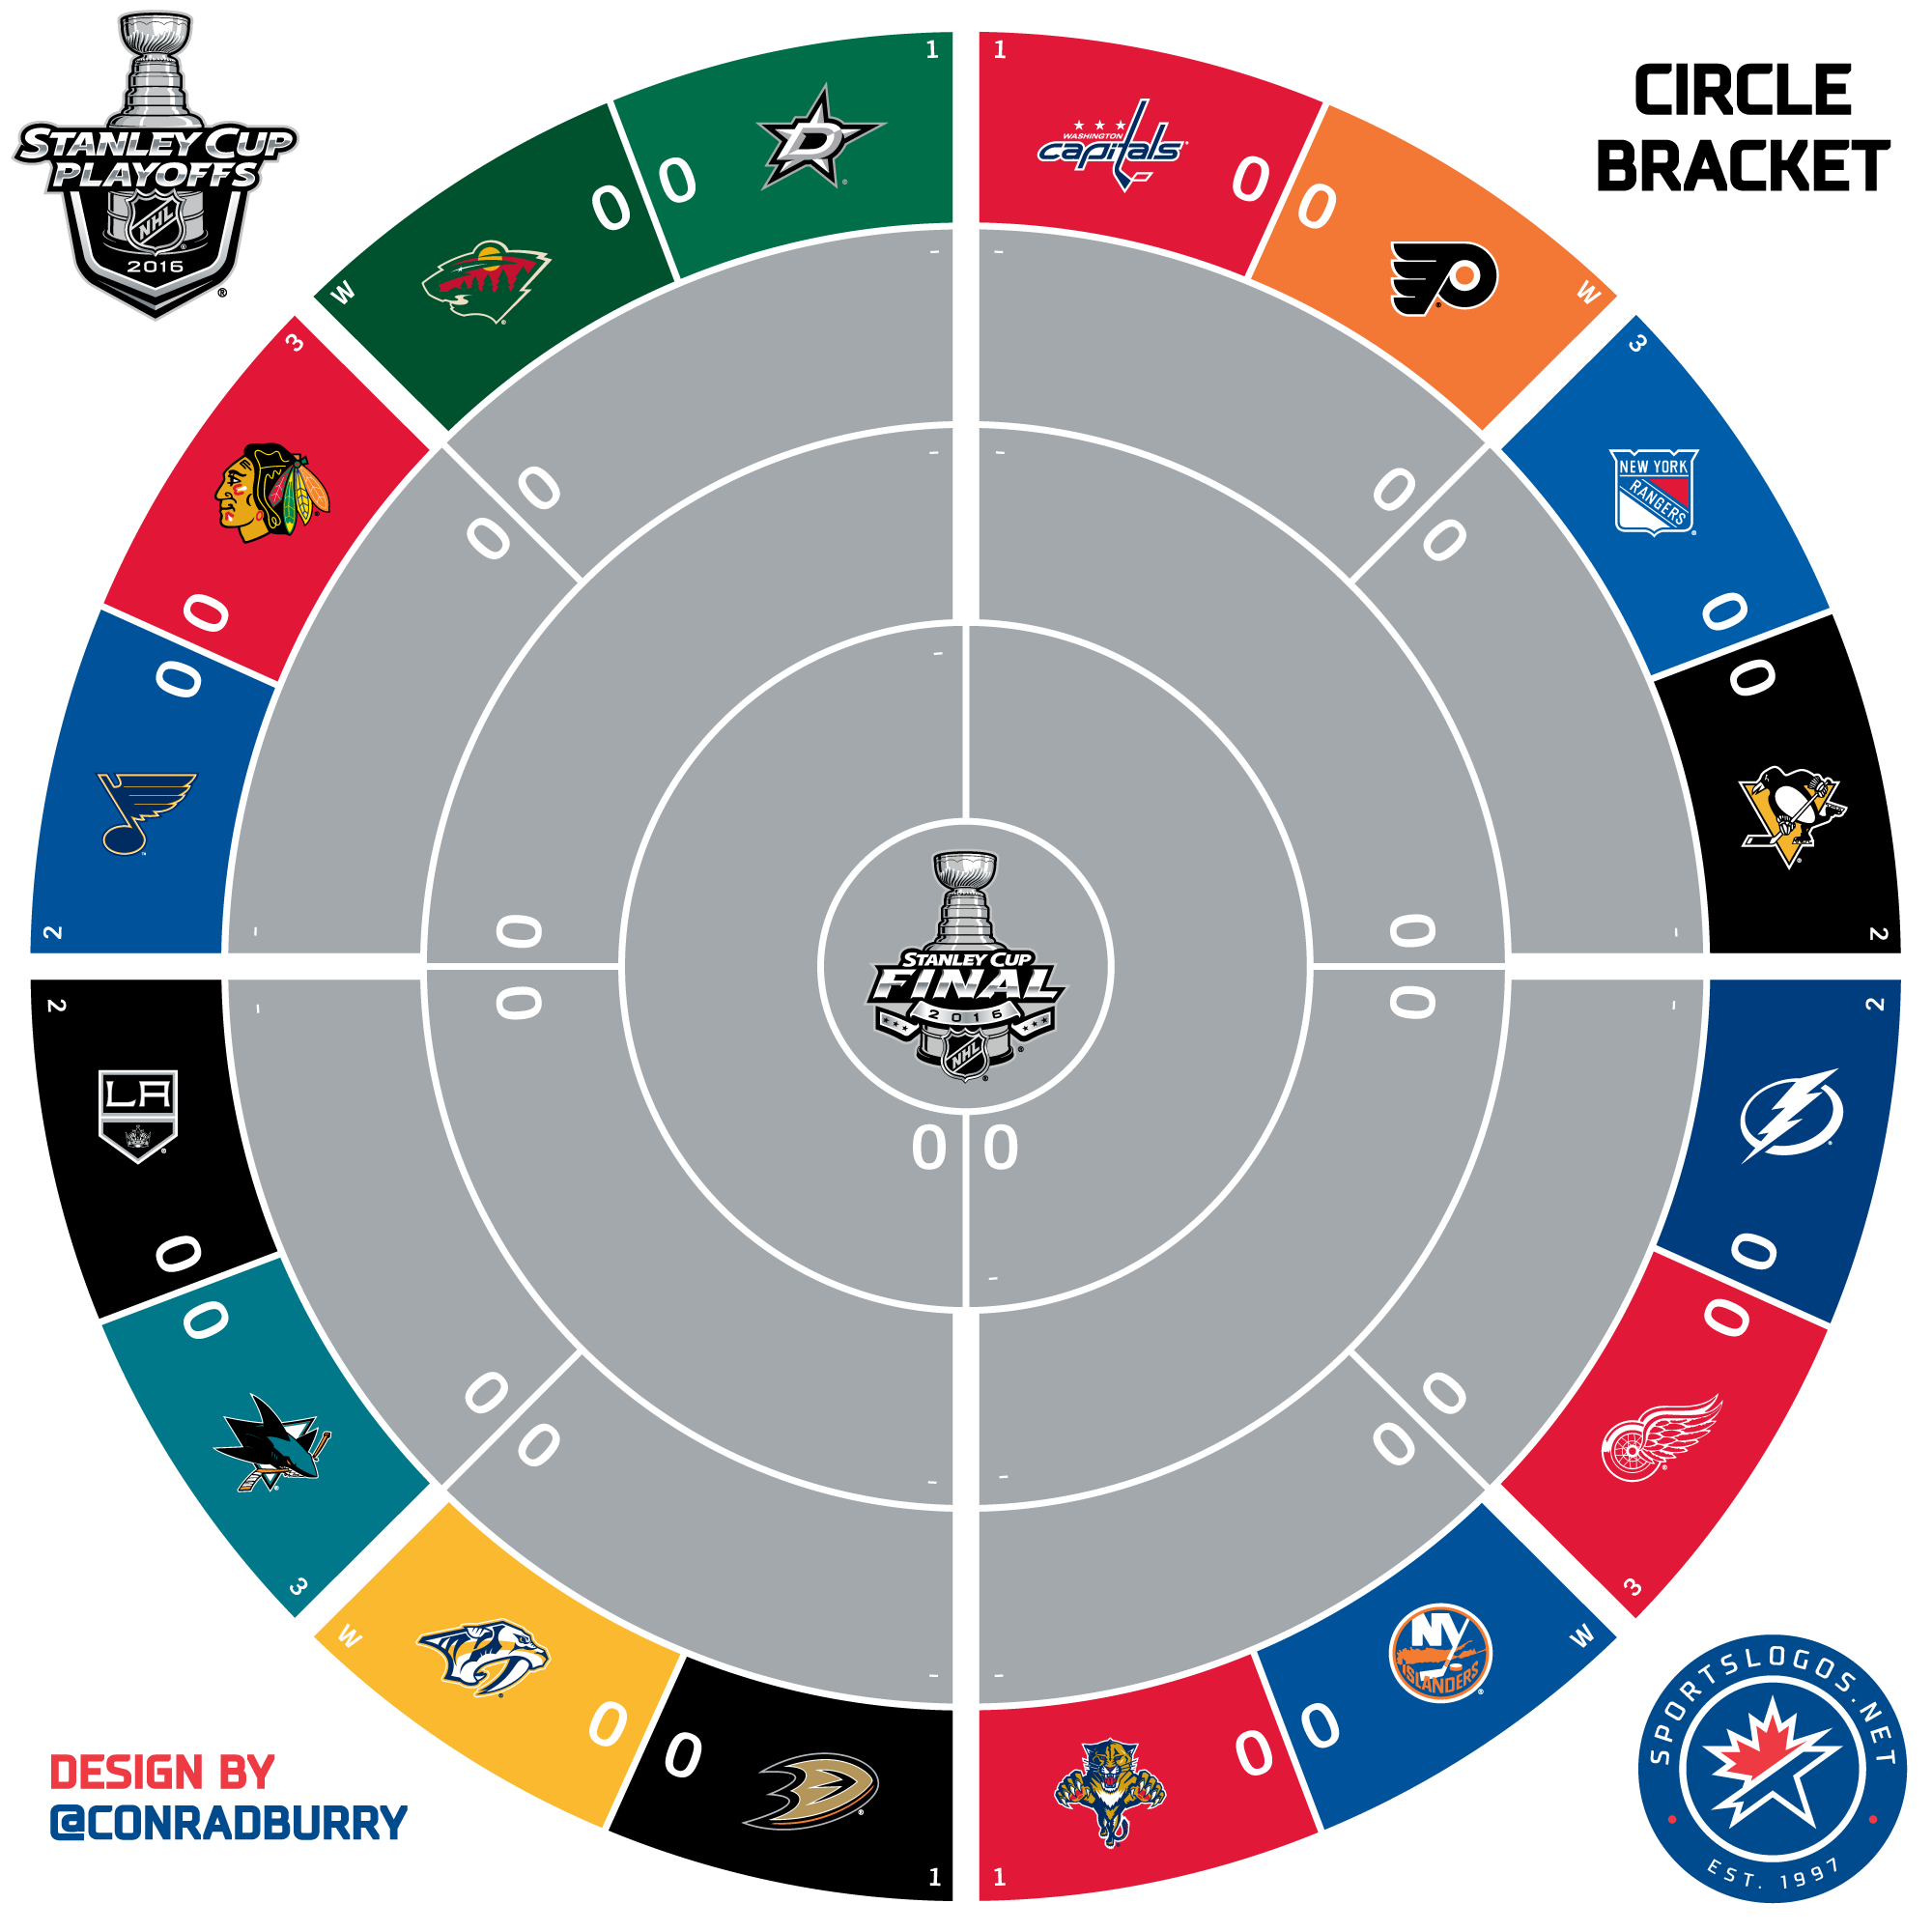 2016 Nhl Playoffs Printable Circle Bracket Chris Creamer S